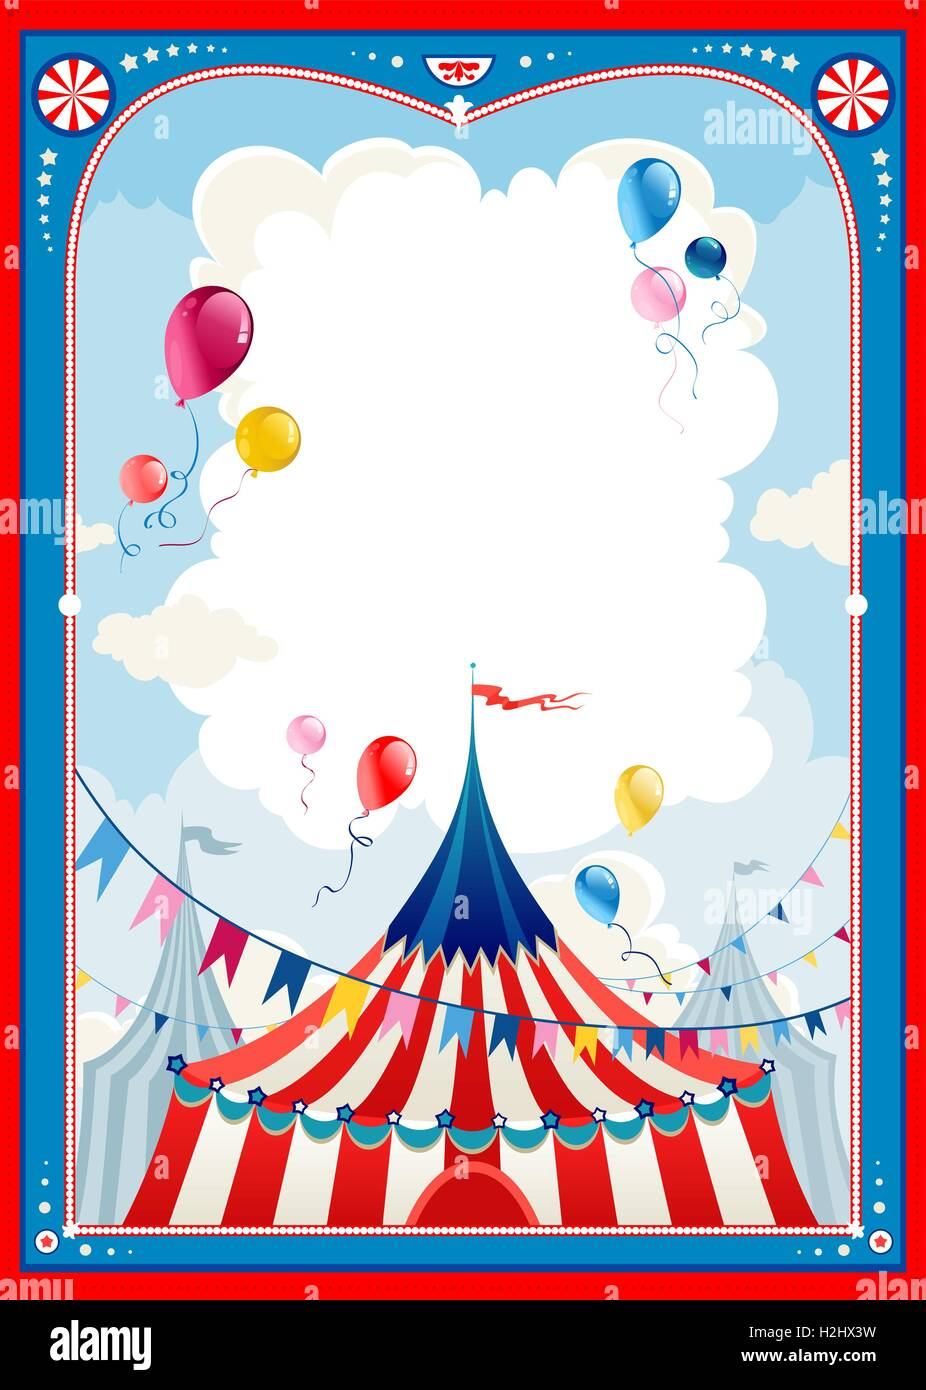 Circus frame Stock Vector Art & Illustration, Vector Image ...